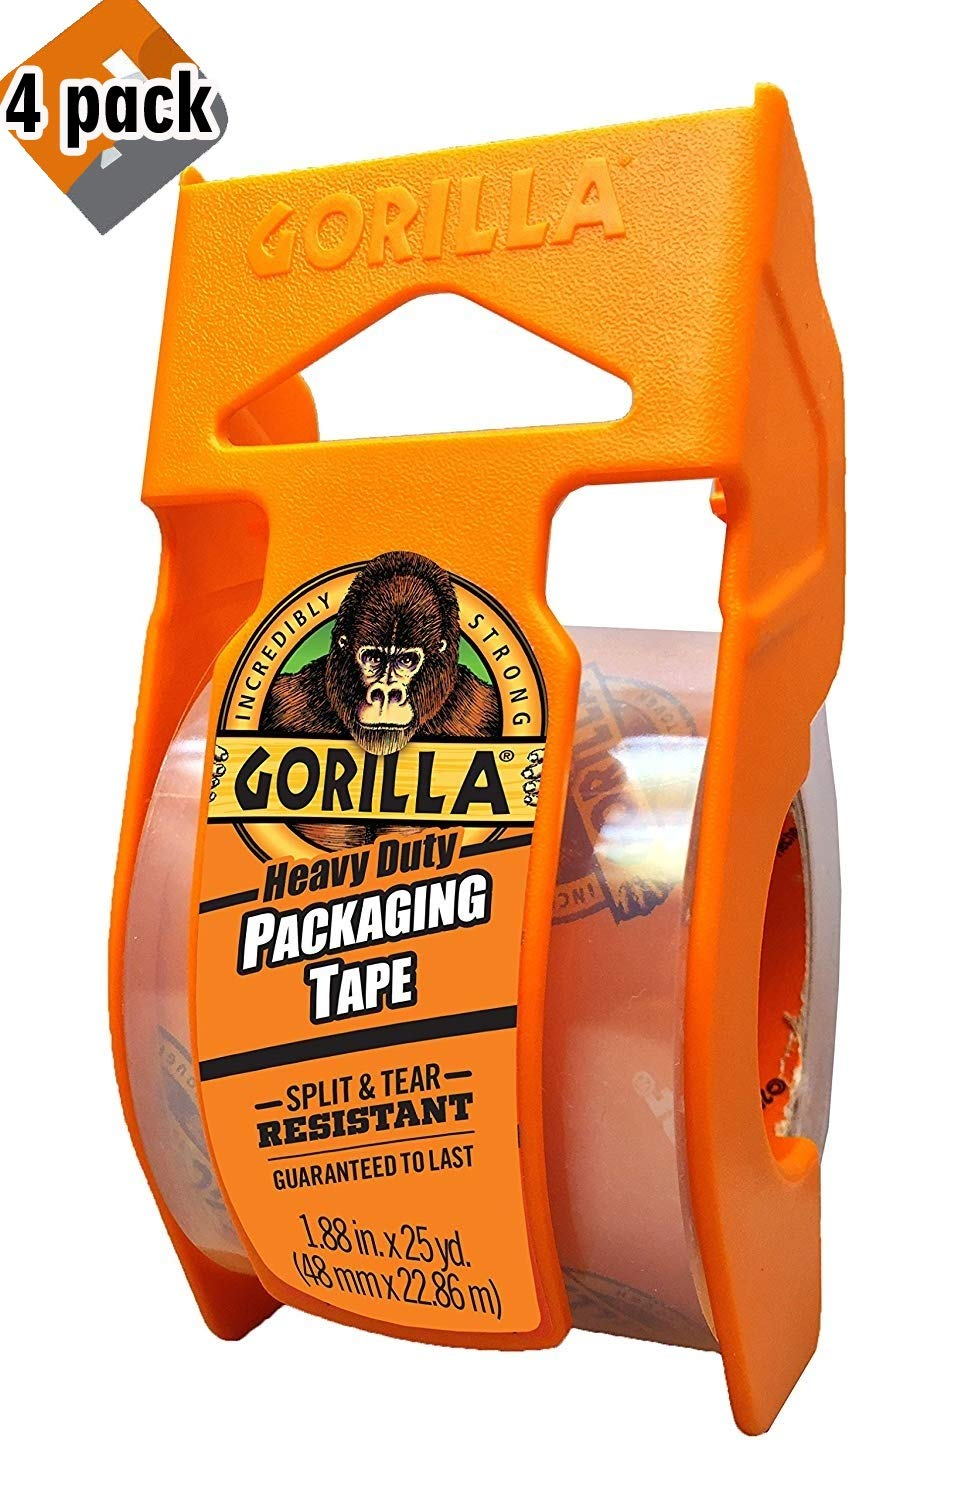 Gorilla Heavy Duty Packing Tape with Dispenser for Moving, Shipping and Storage, 1.88'' x 25 yd, Clear, 4 Pack by Gorilla